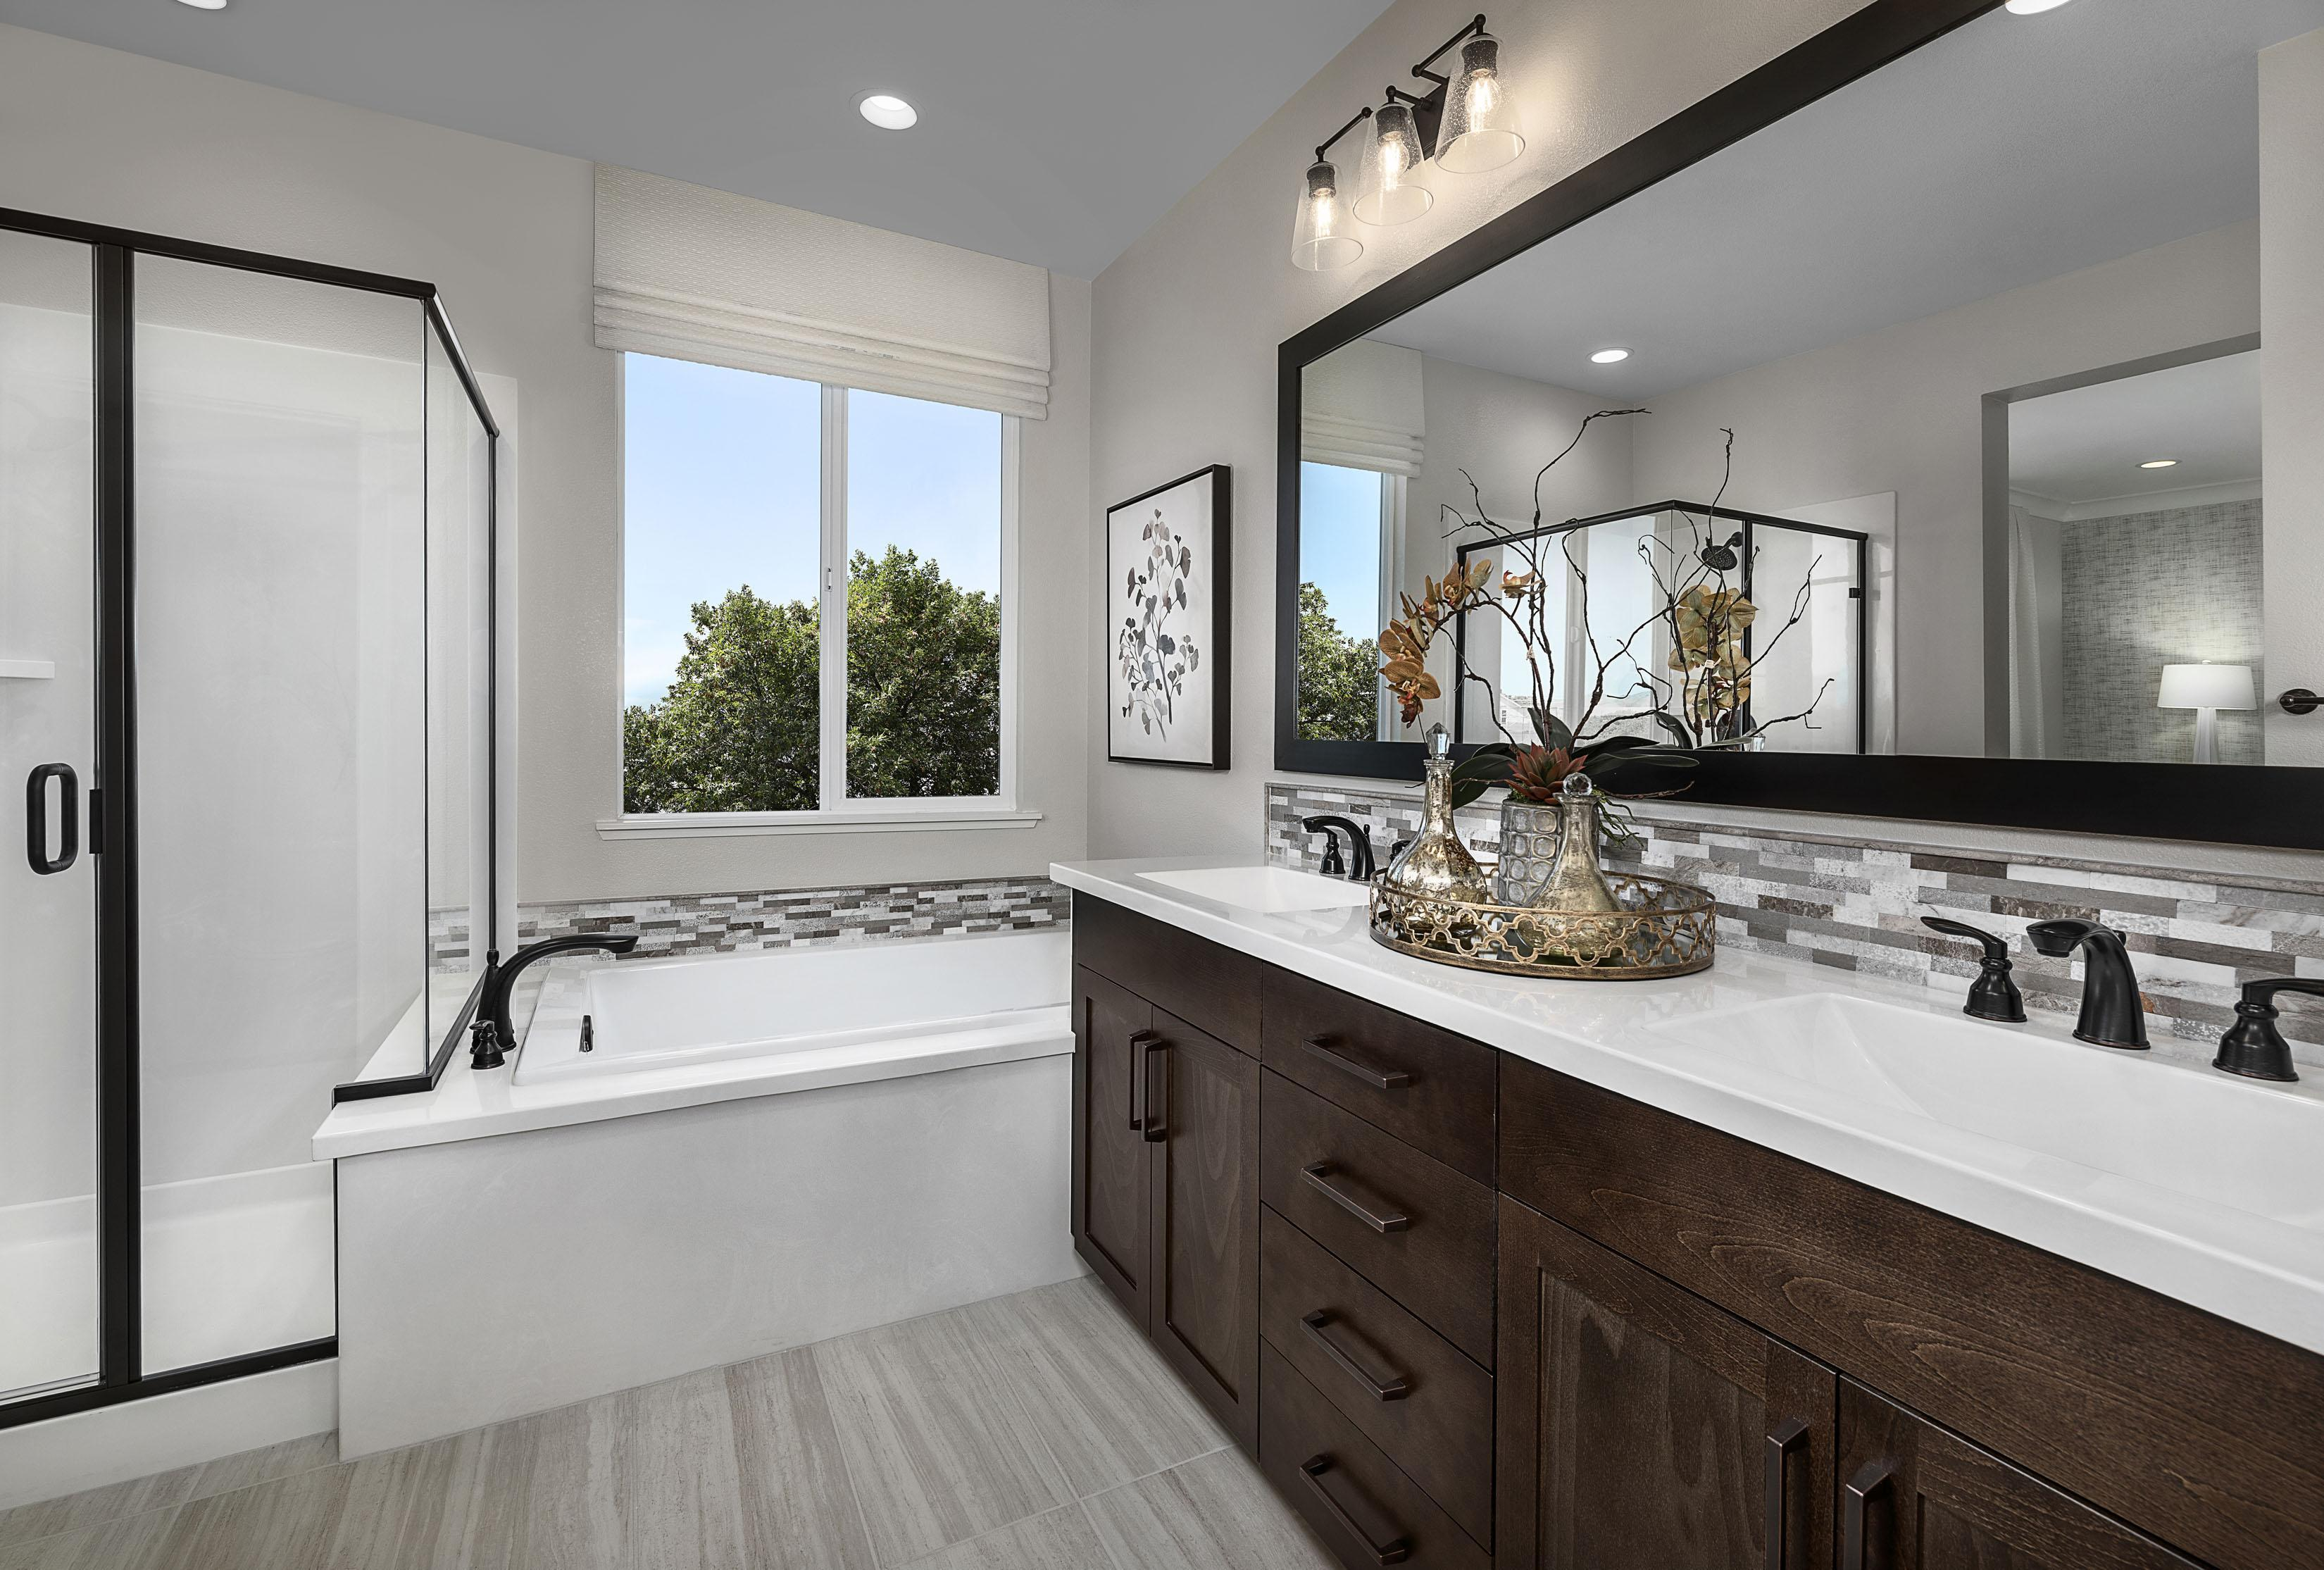 Bathroom featured in the Carousel Residence 2 By Kiper Homes in Santa Cruz, CA